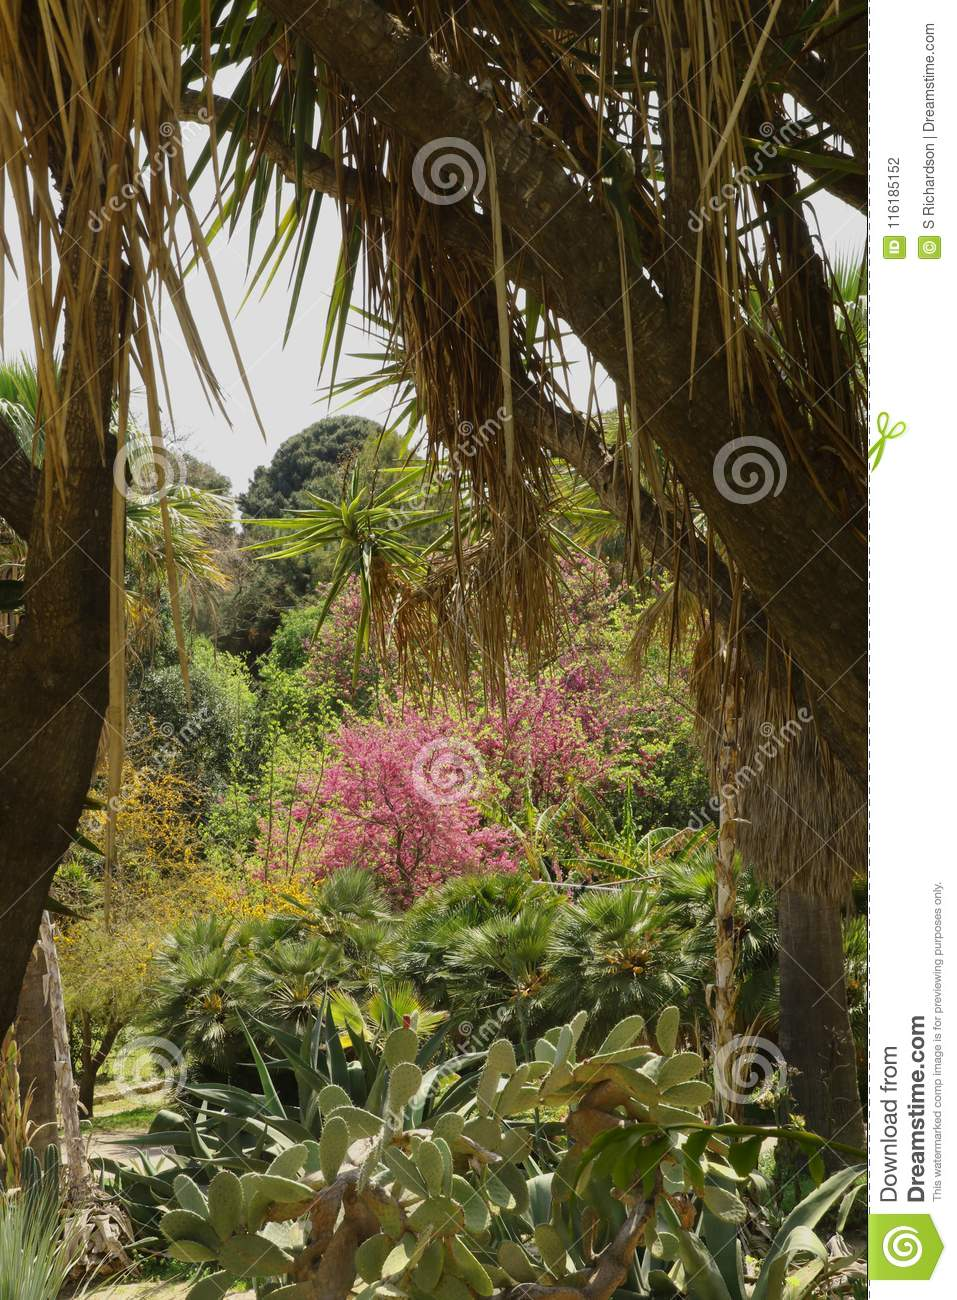 Palms And Trees In The Botanical Gardens Stock Photo - Image of ...